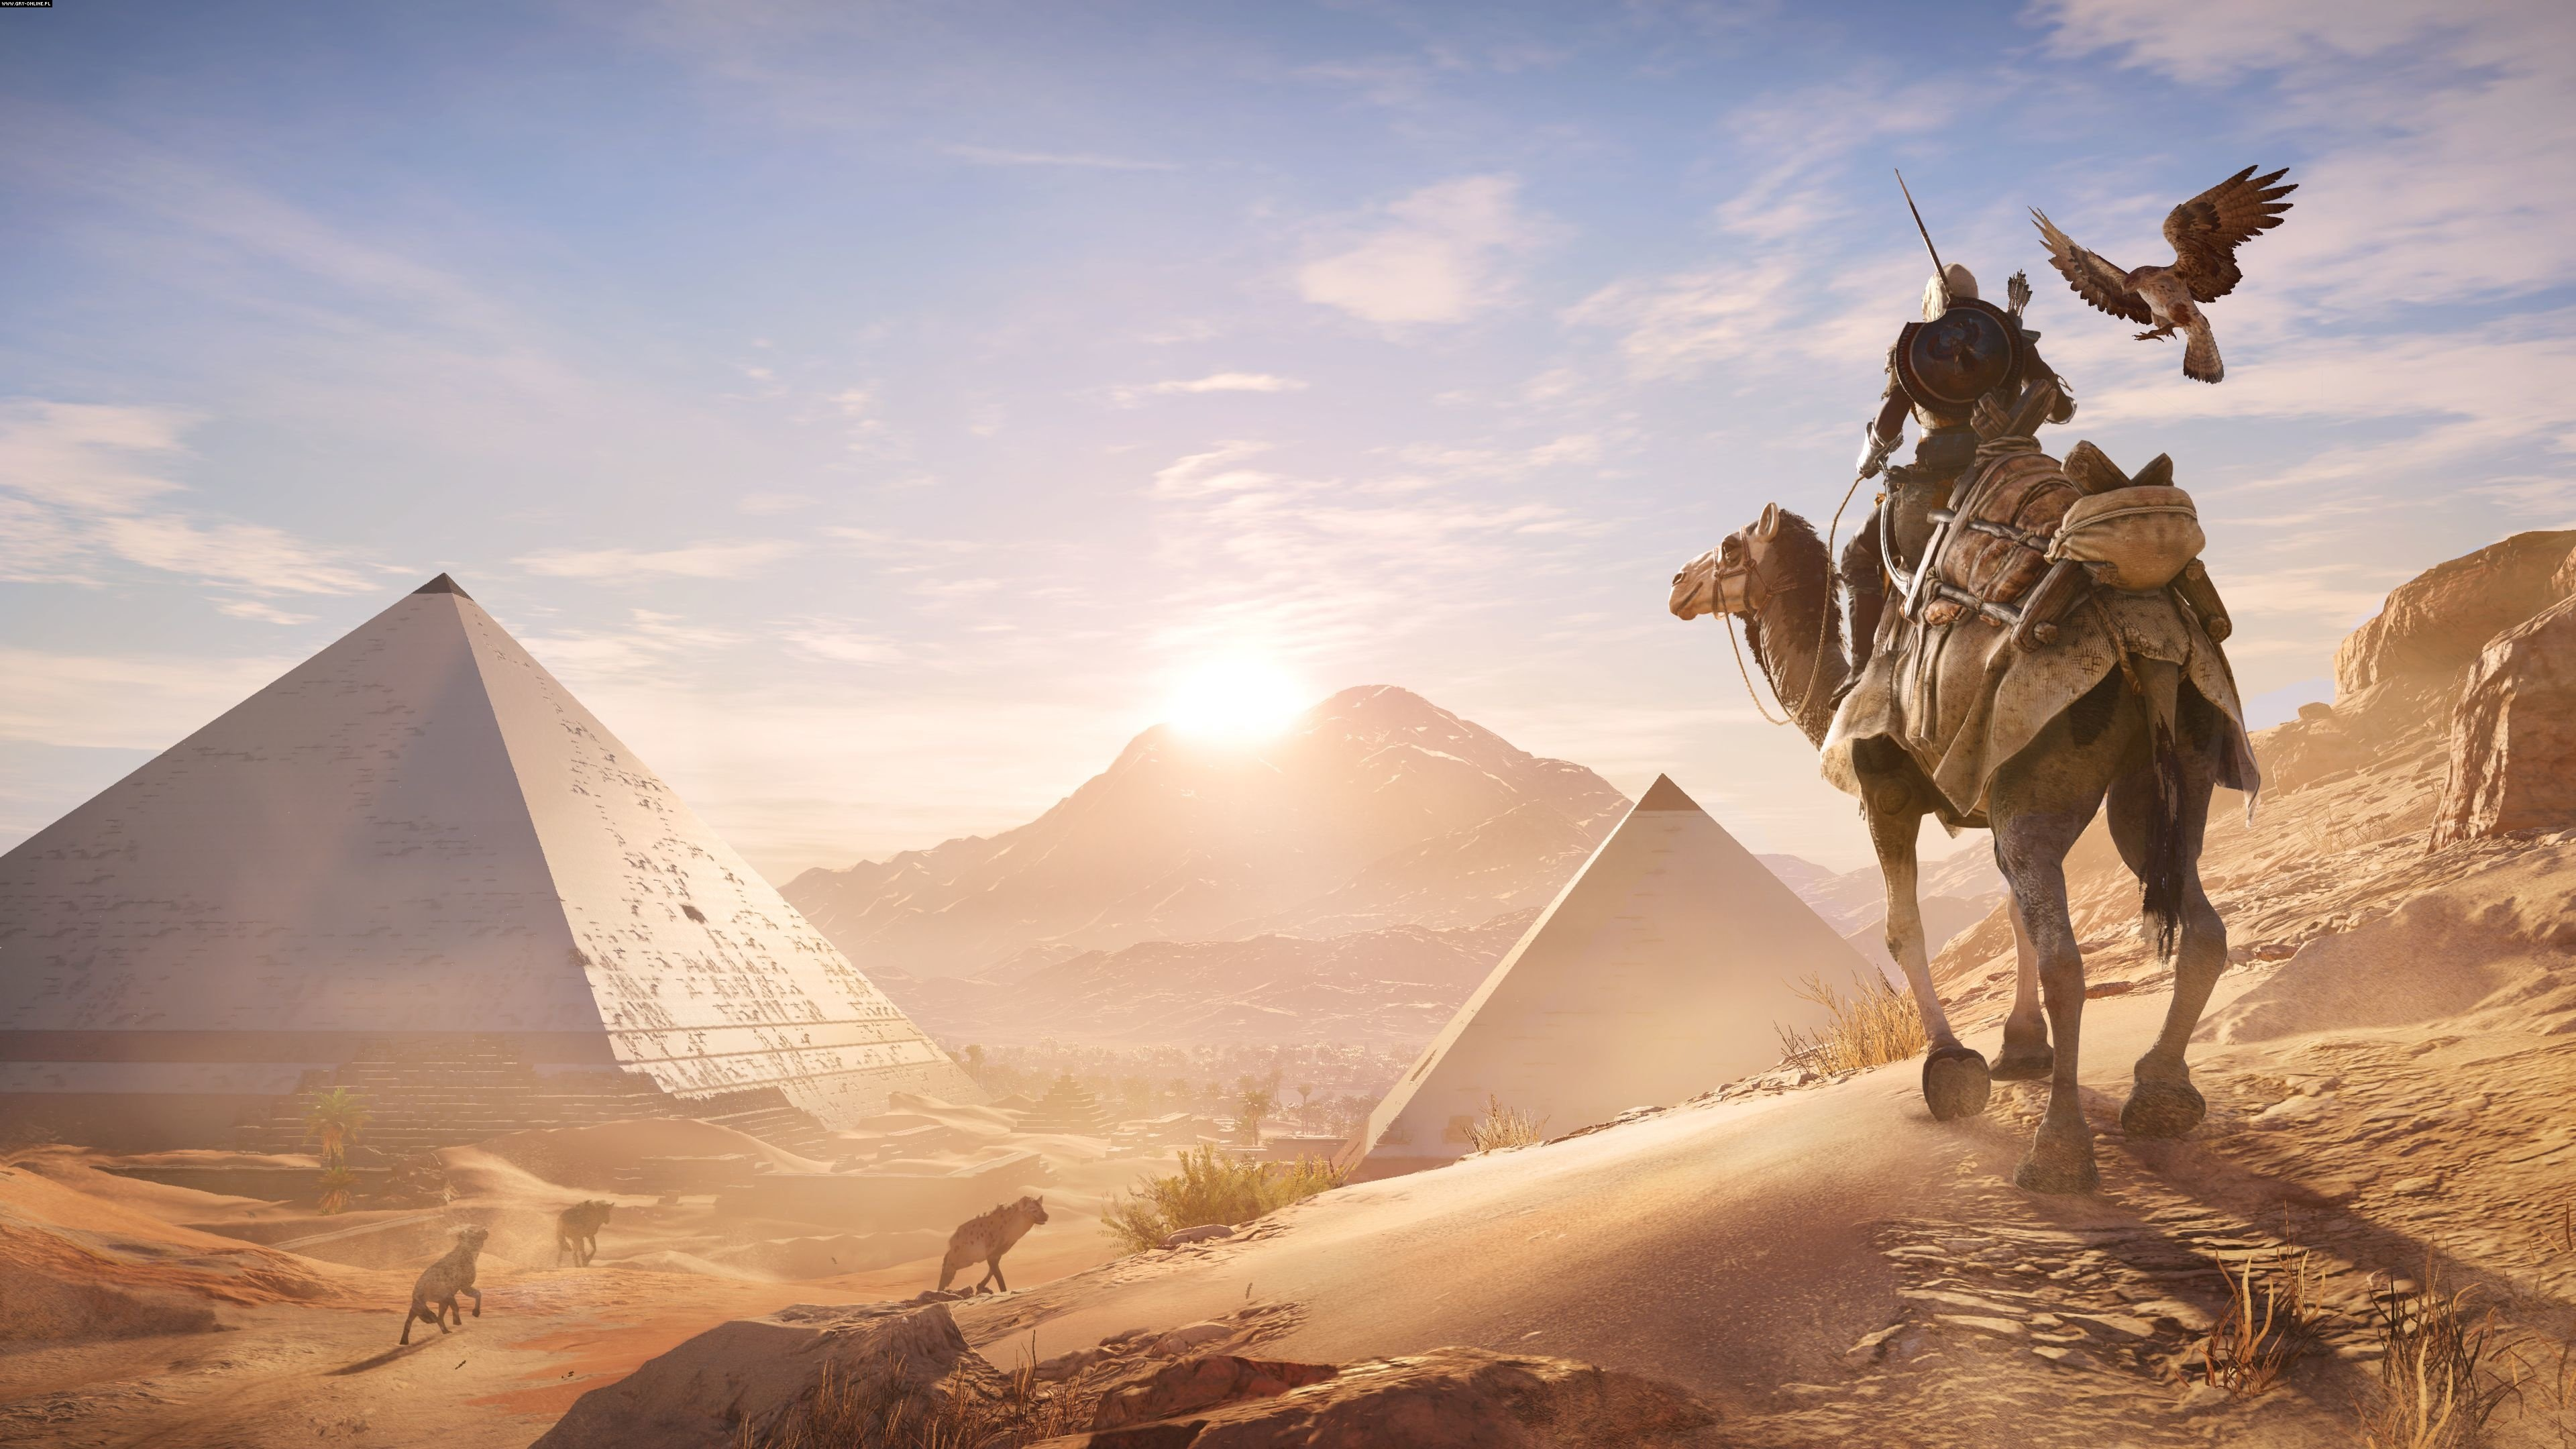 Assassin's Creed: Origins PC, PS4, XONE Games Image 11/13, Ubisoft